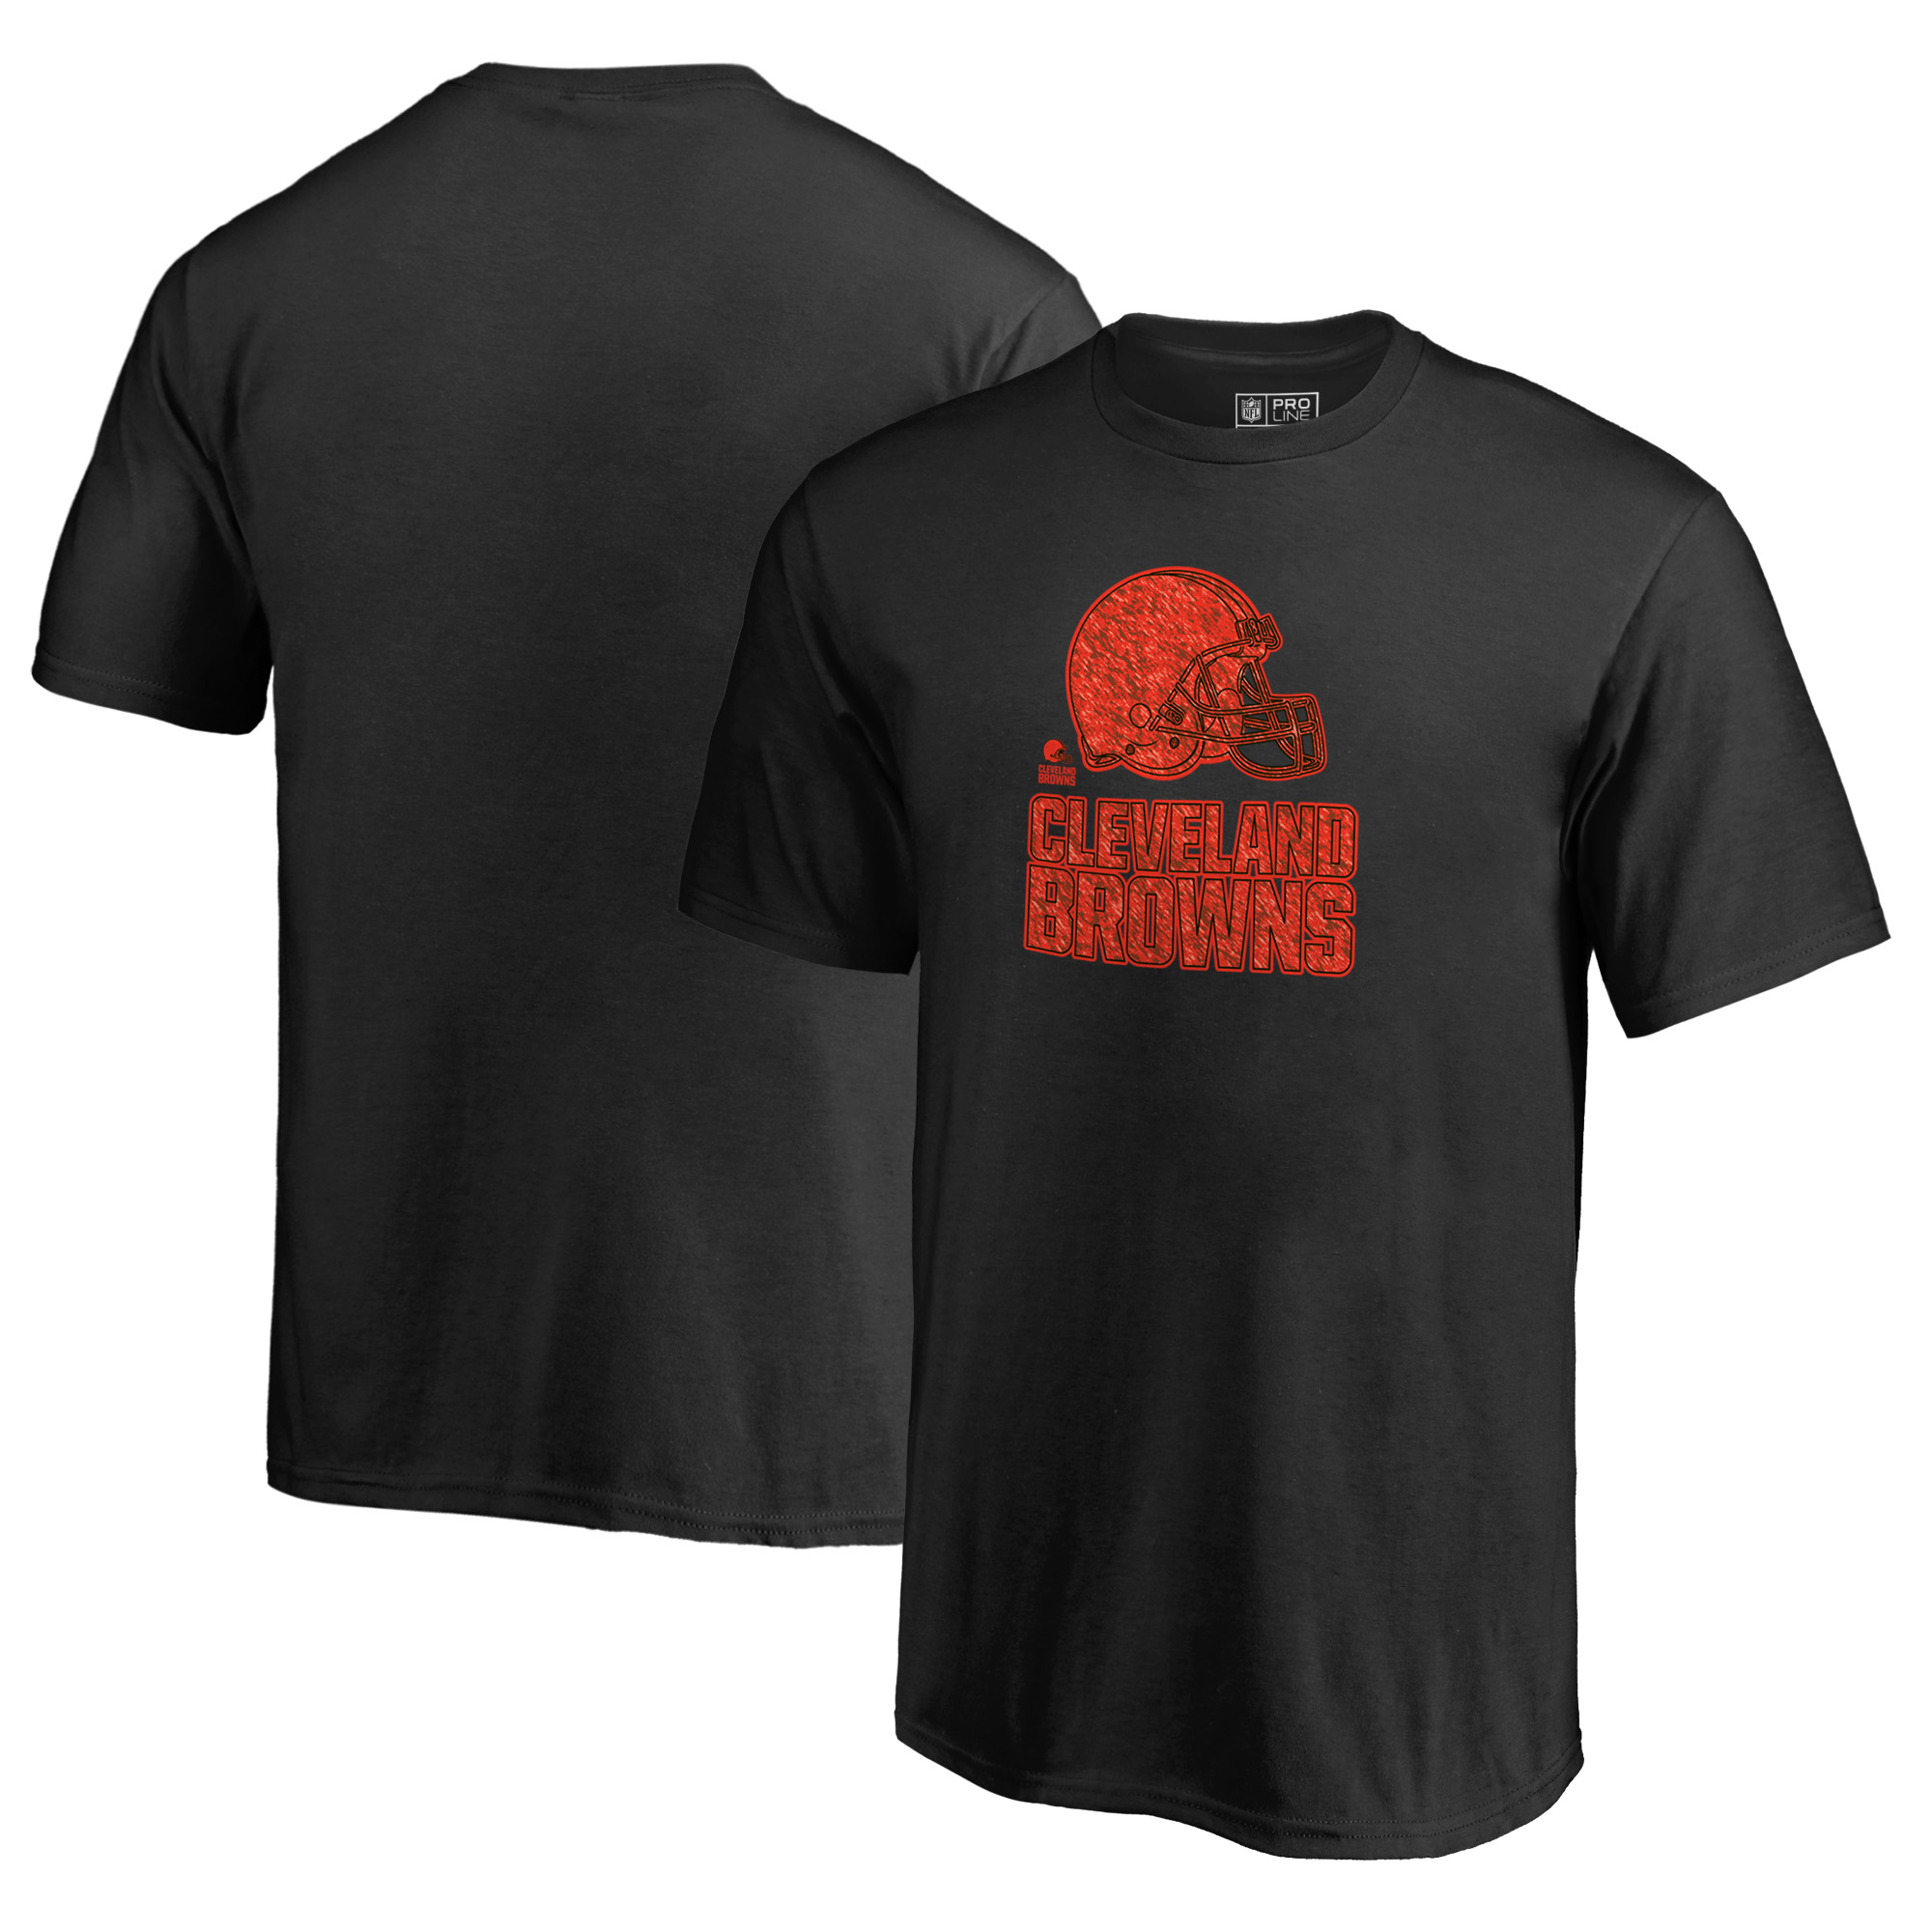 Cleveland Browns NFL Pro Line by Fanatics Branded Youth Training Camp Hookup T-Shirt - Black